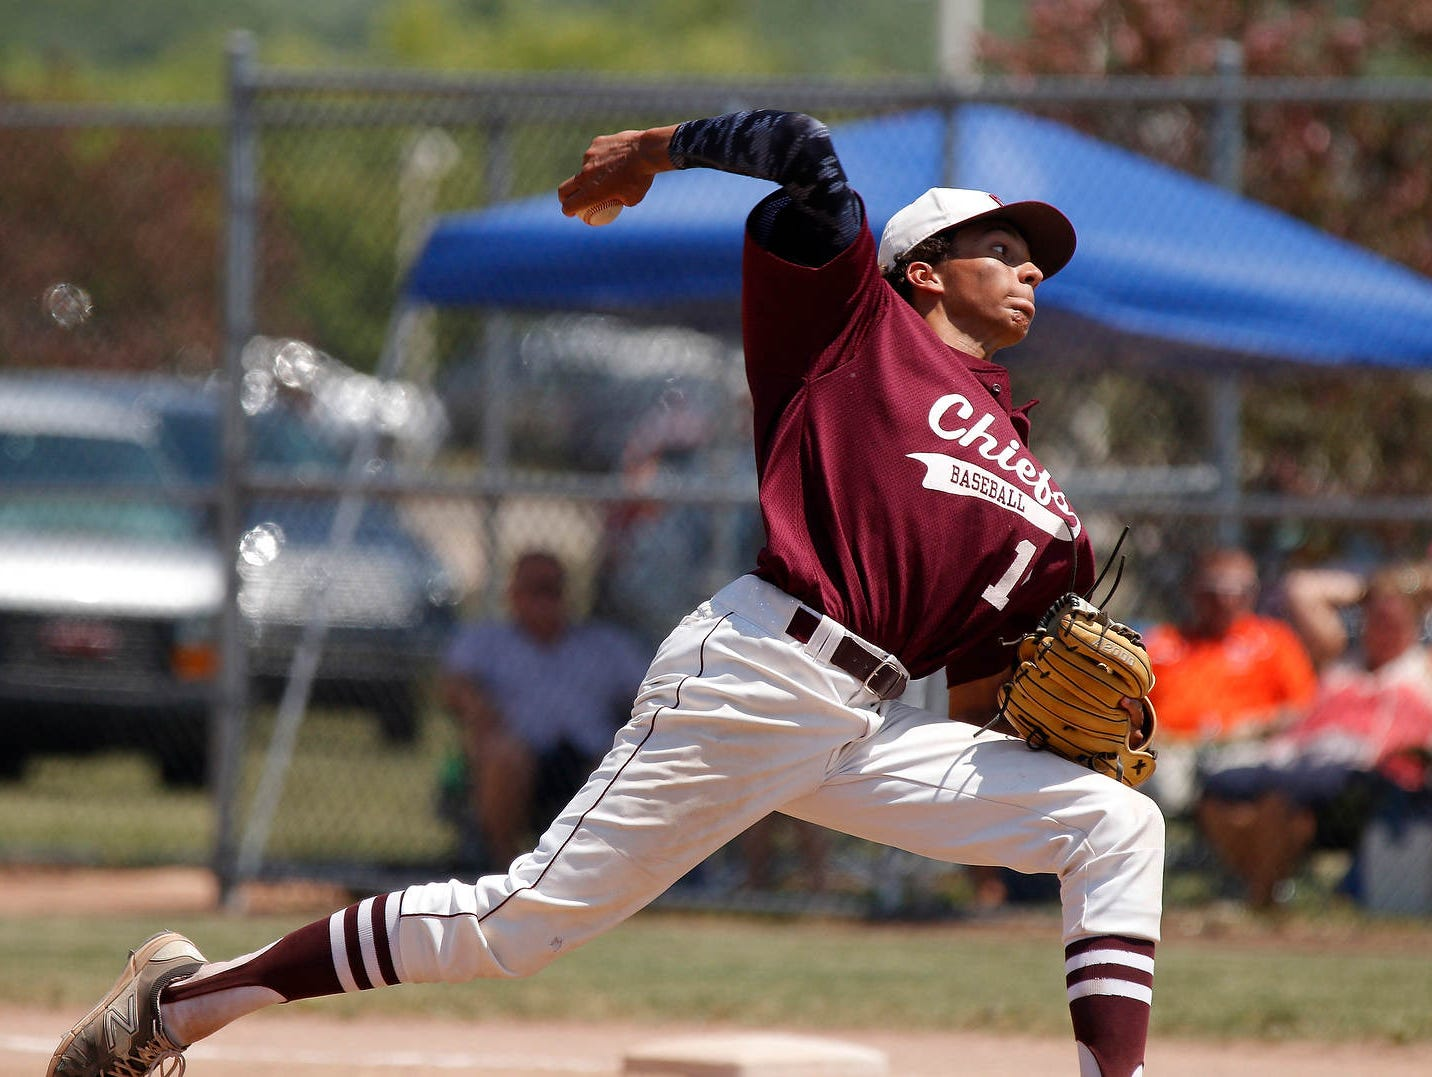 Okemos' A.J. Matusz delivers a pitch against Portage Northern in their Division 1 regional semifinal game Saturday, June 11, 2016, at Holt High School. Okemos fell 13-3.